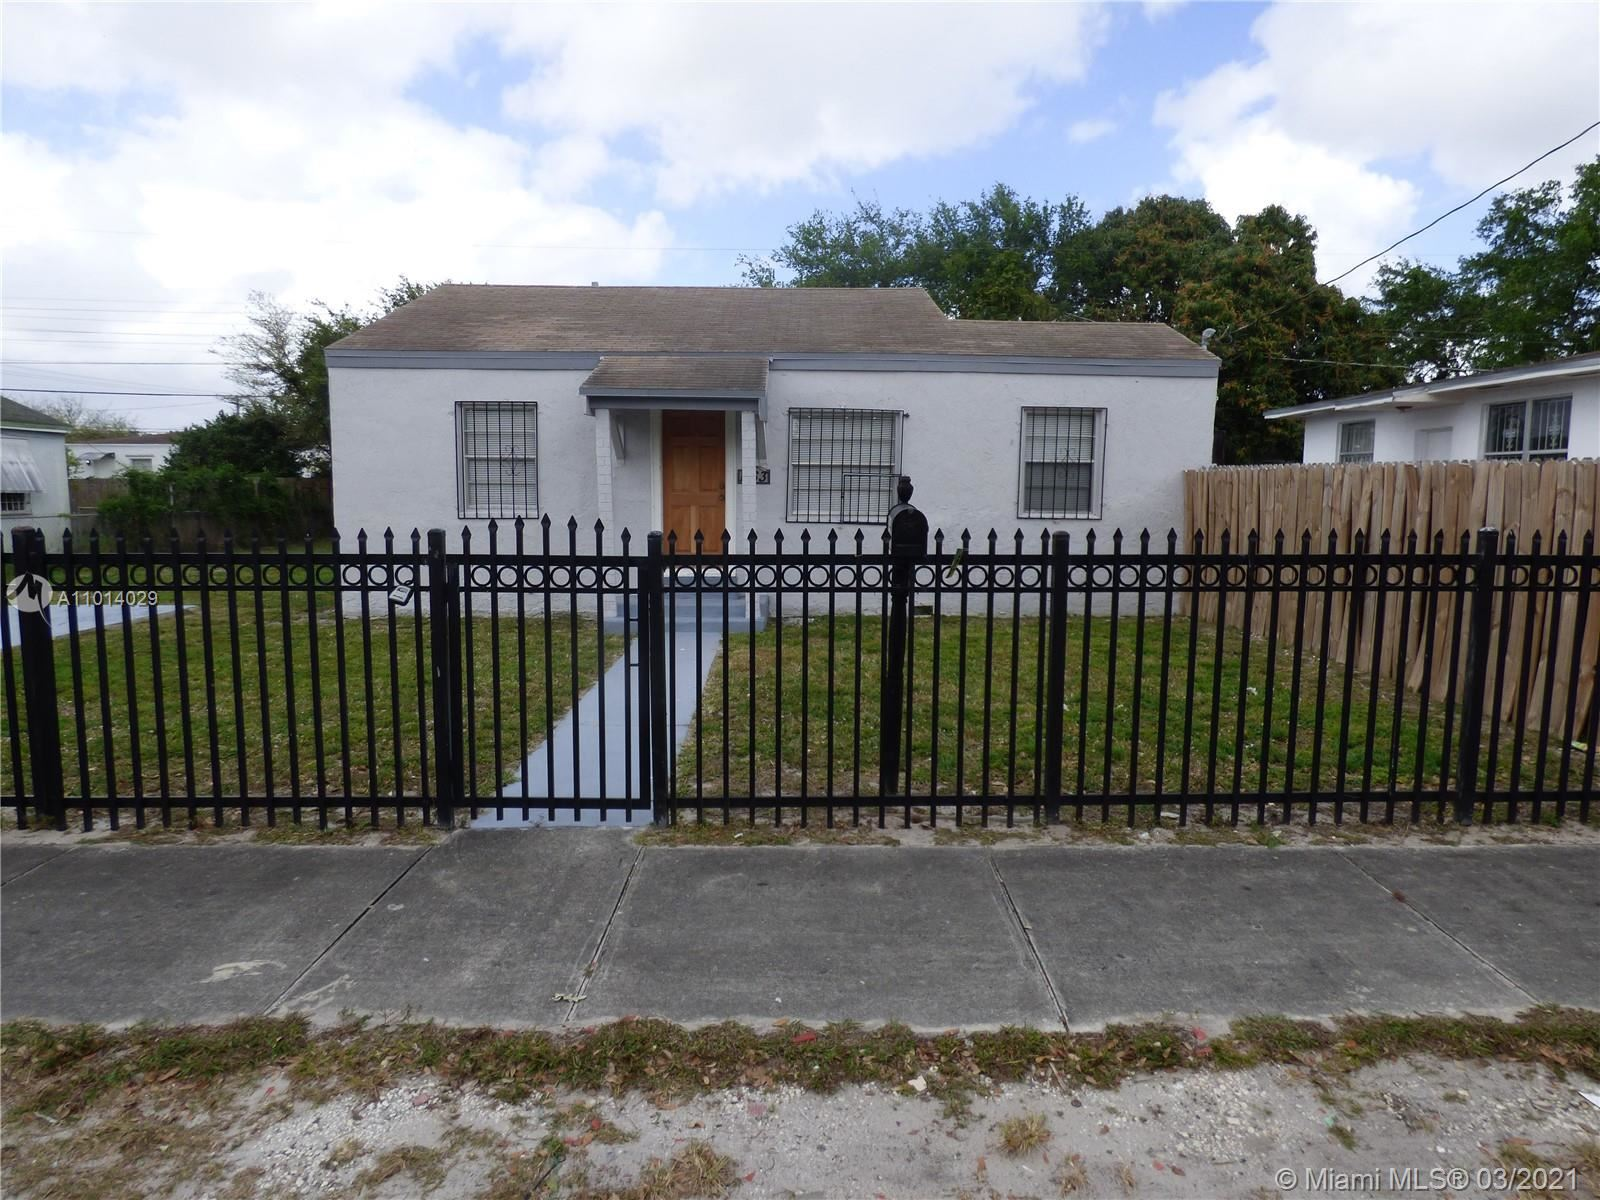 1763 NW 82nd St, Miami, FL 33147 - #: A11014029